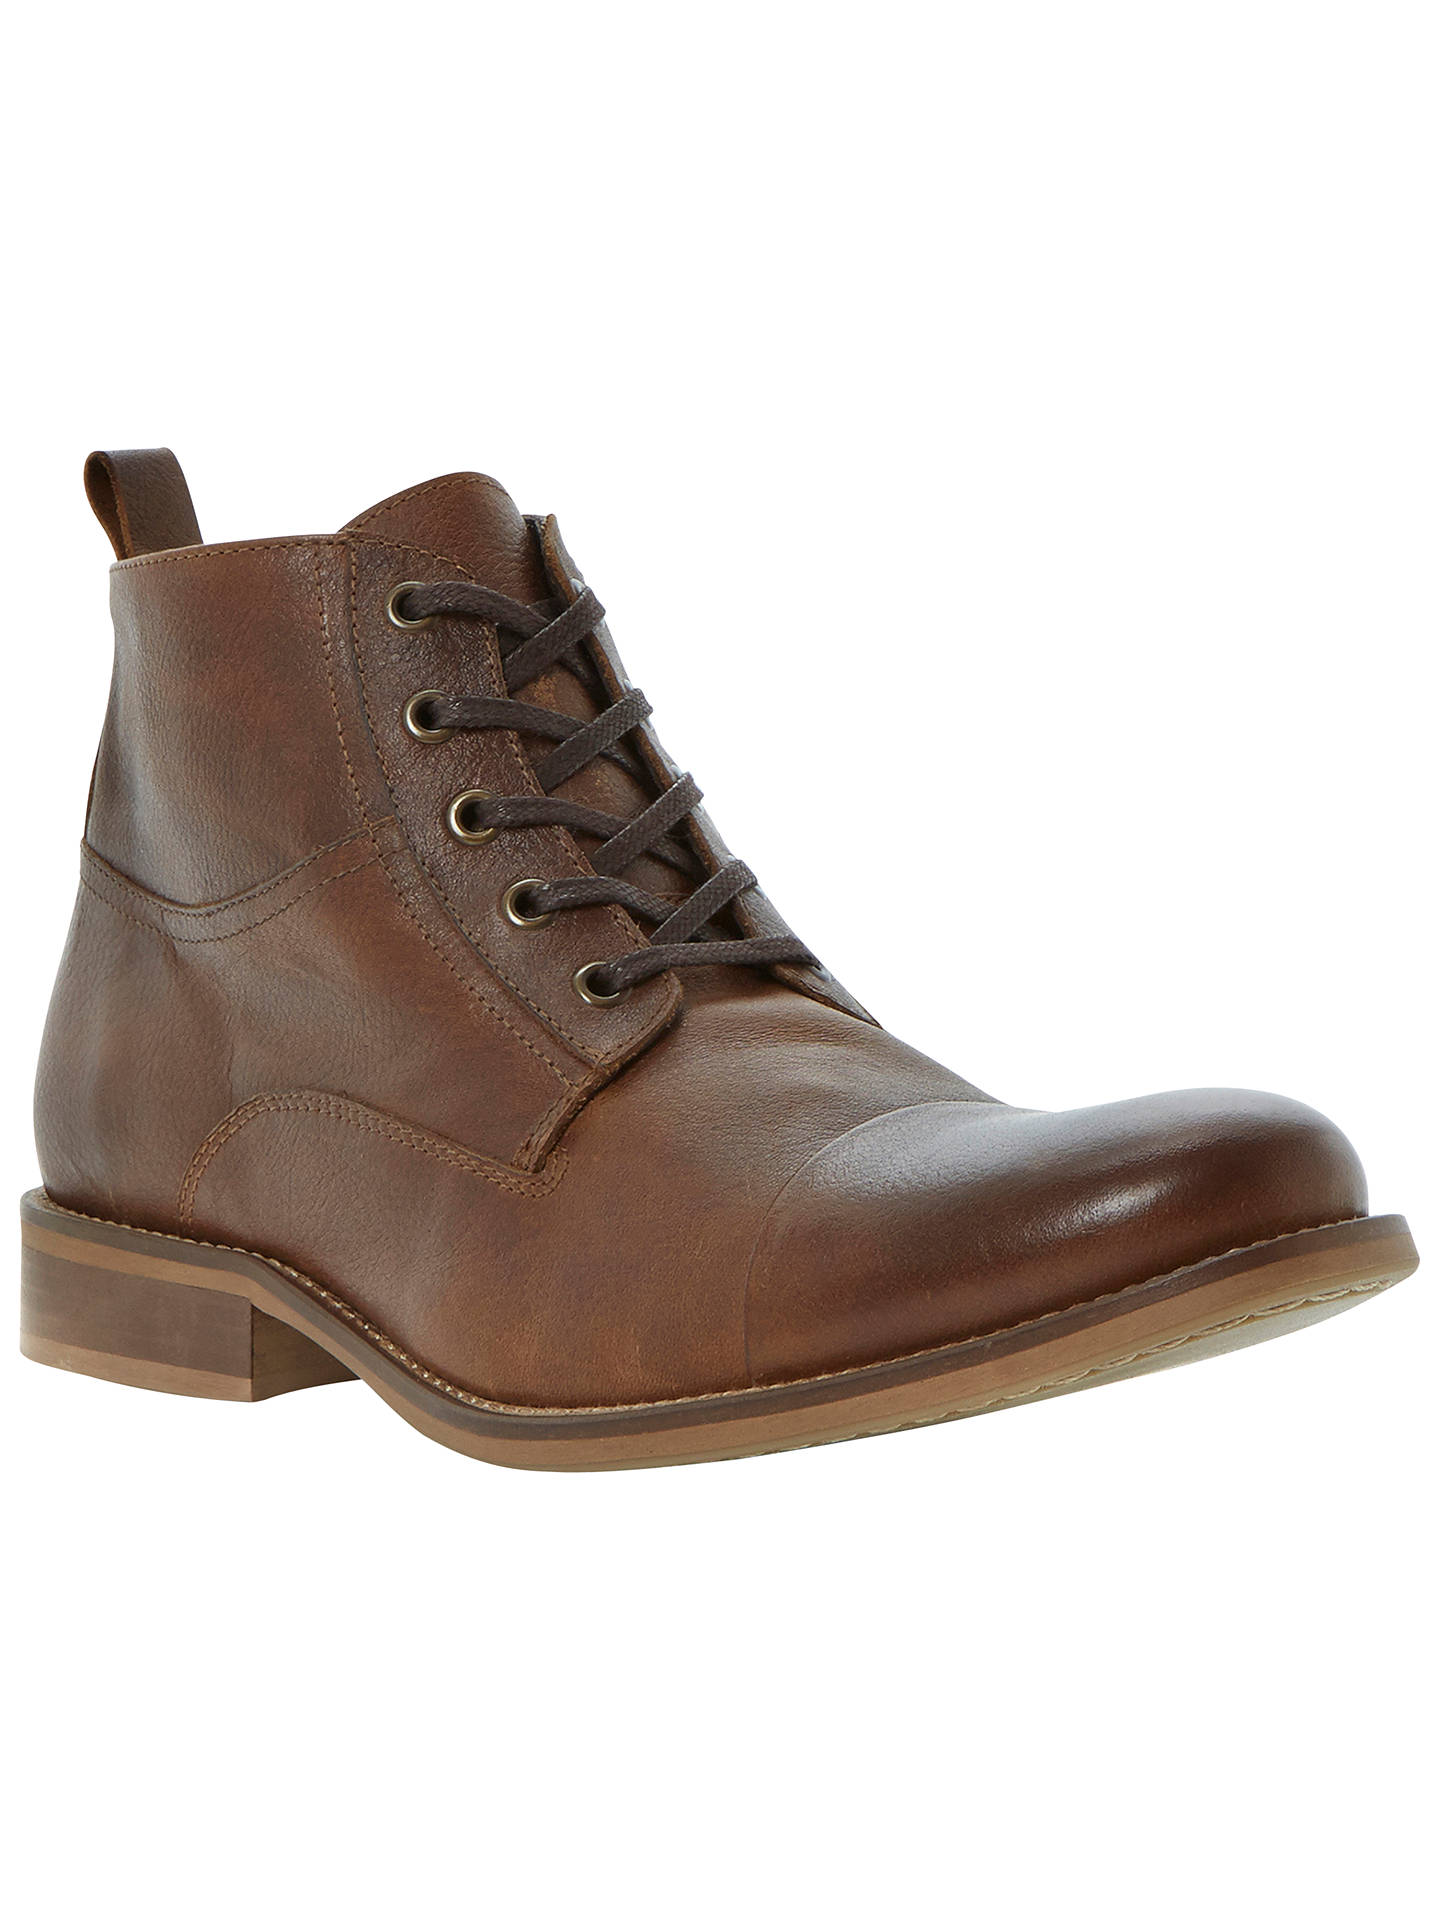 9139c1c3924 Bertie Cadet Leather Lace-Up Boot at John Lewis & Partners